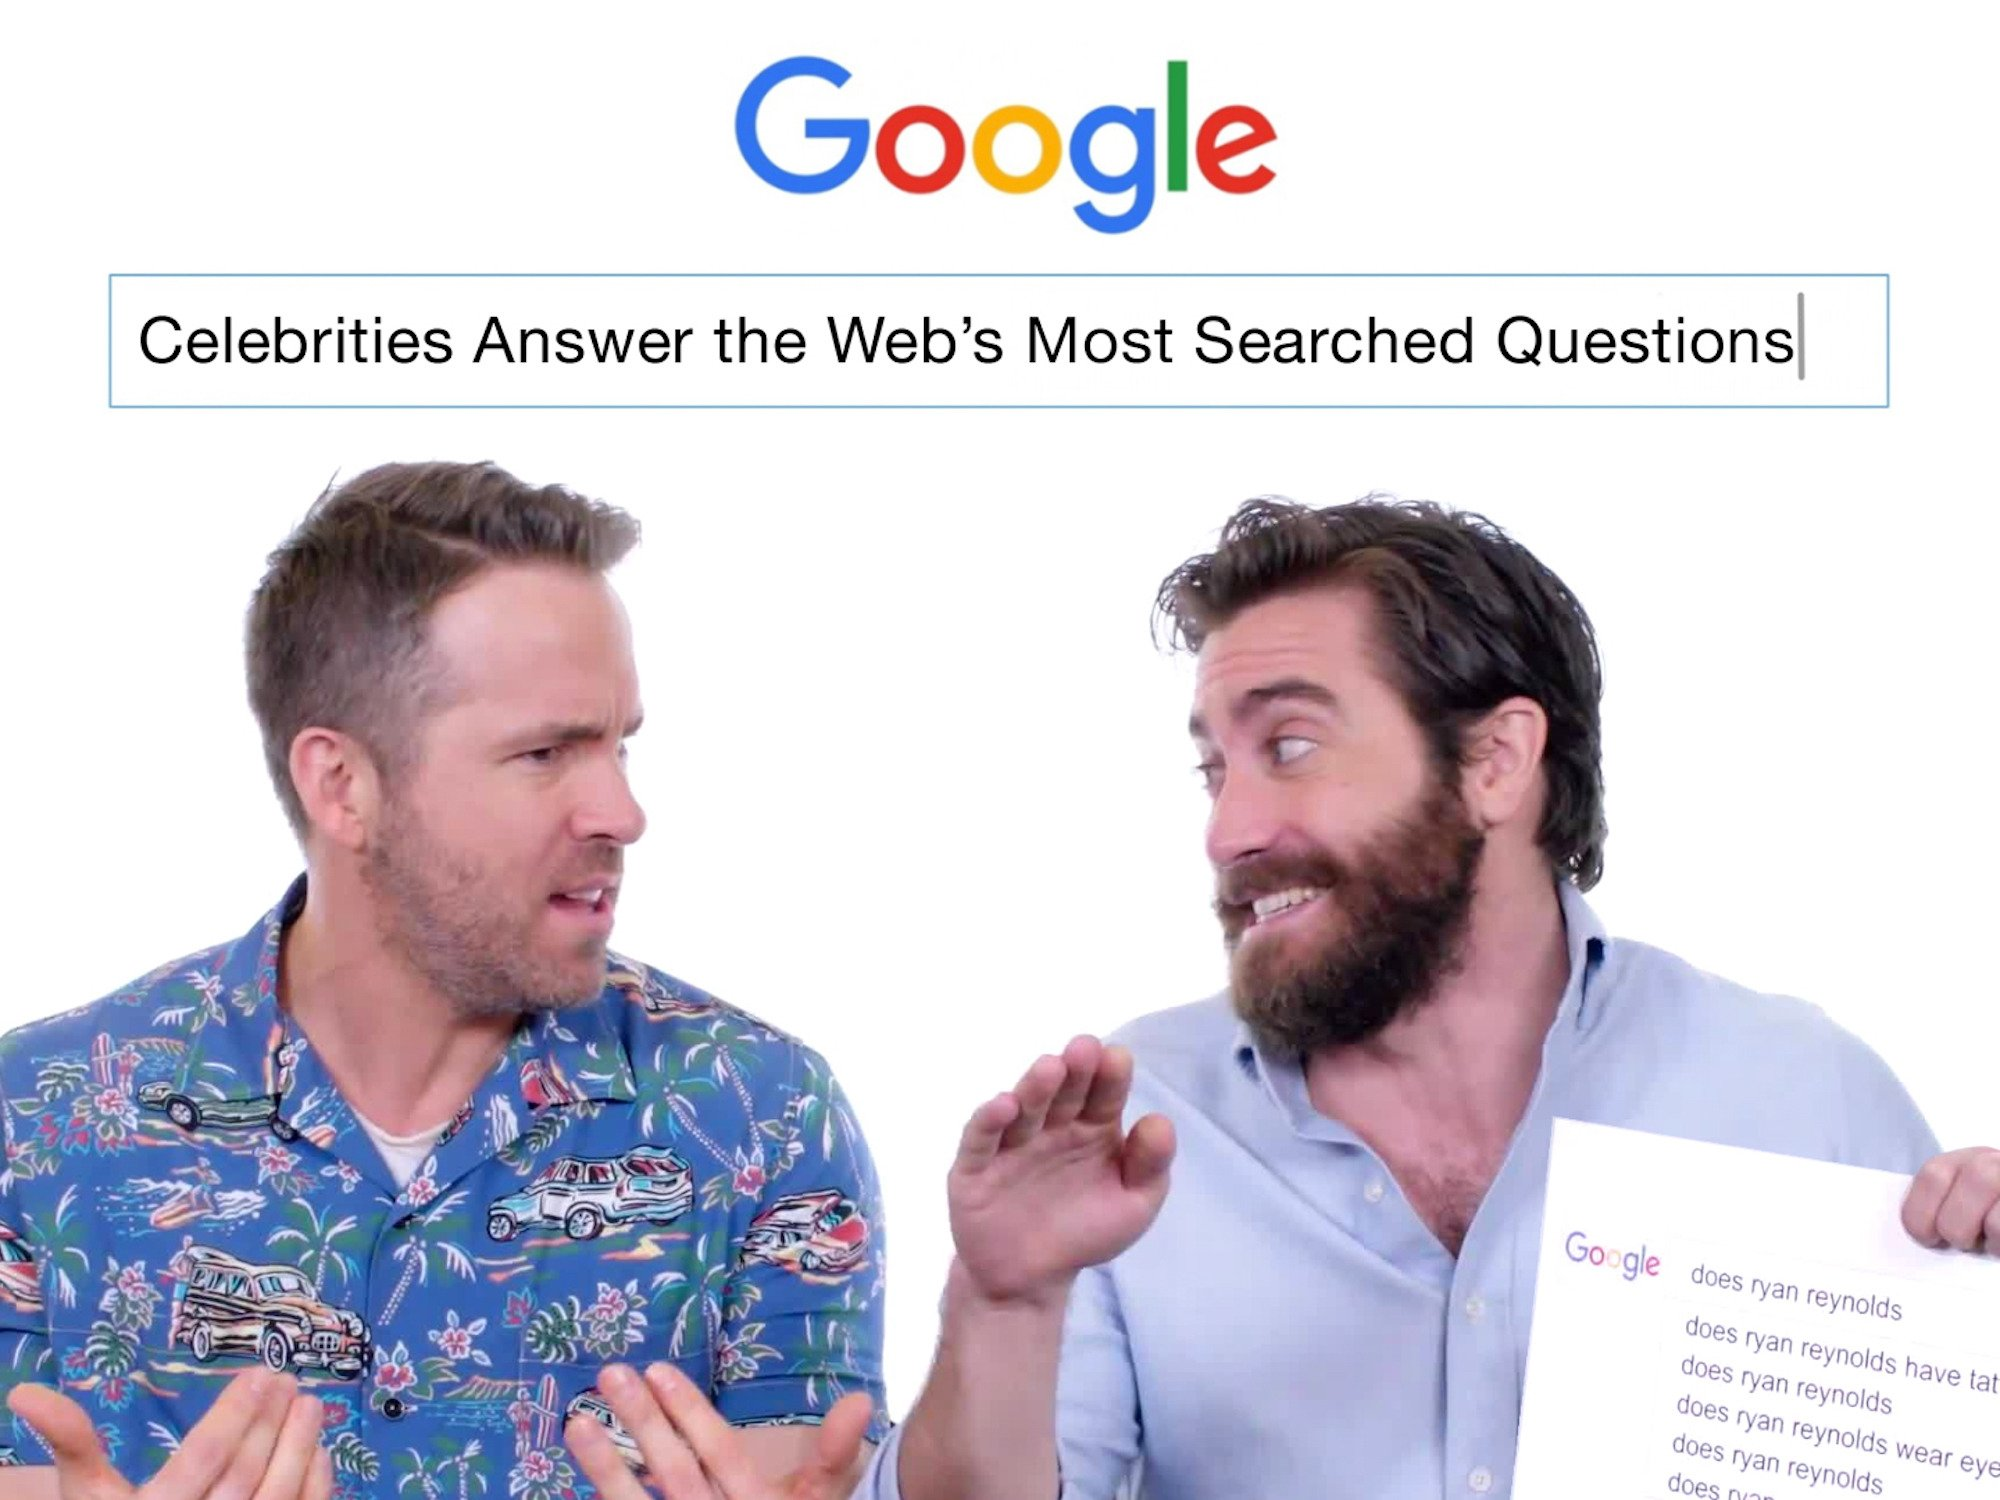 Clip: Celebrities Answer the Web's Most Searched Questions - Season 1